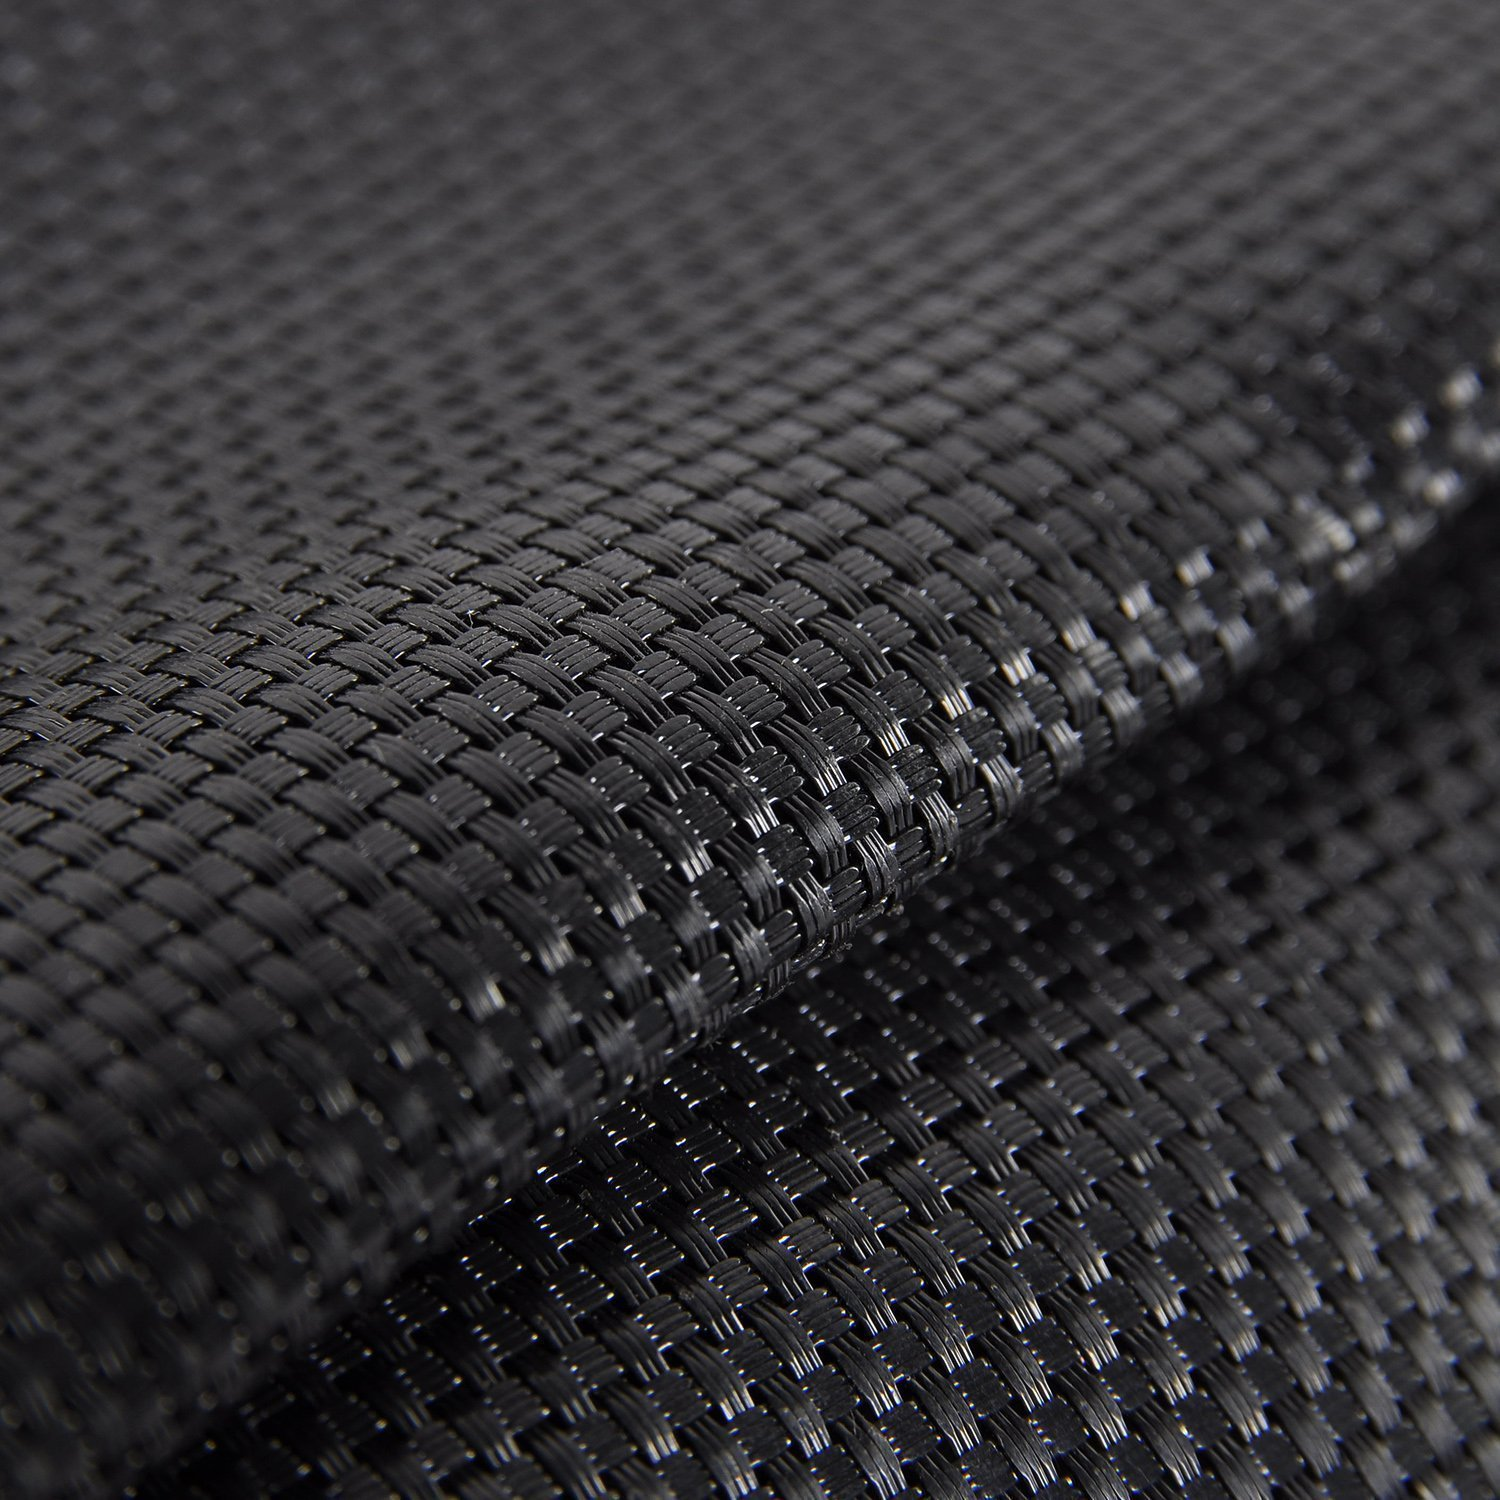 ULTRAPOWER SPORTS 12Ft Replacement Trampoline Jumping Mat with 72 Rings by ULTRAPOWER SPORTS (Image #4)